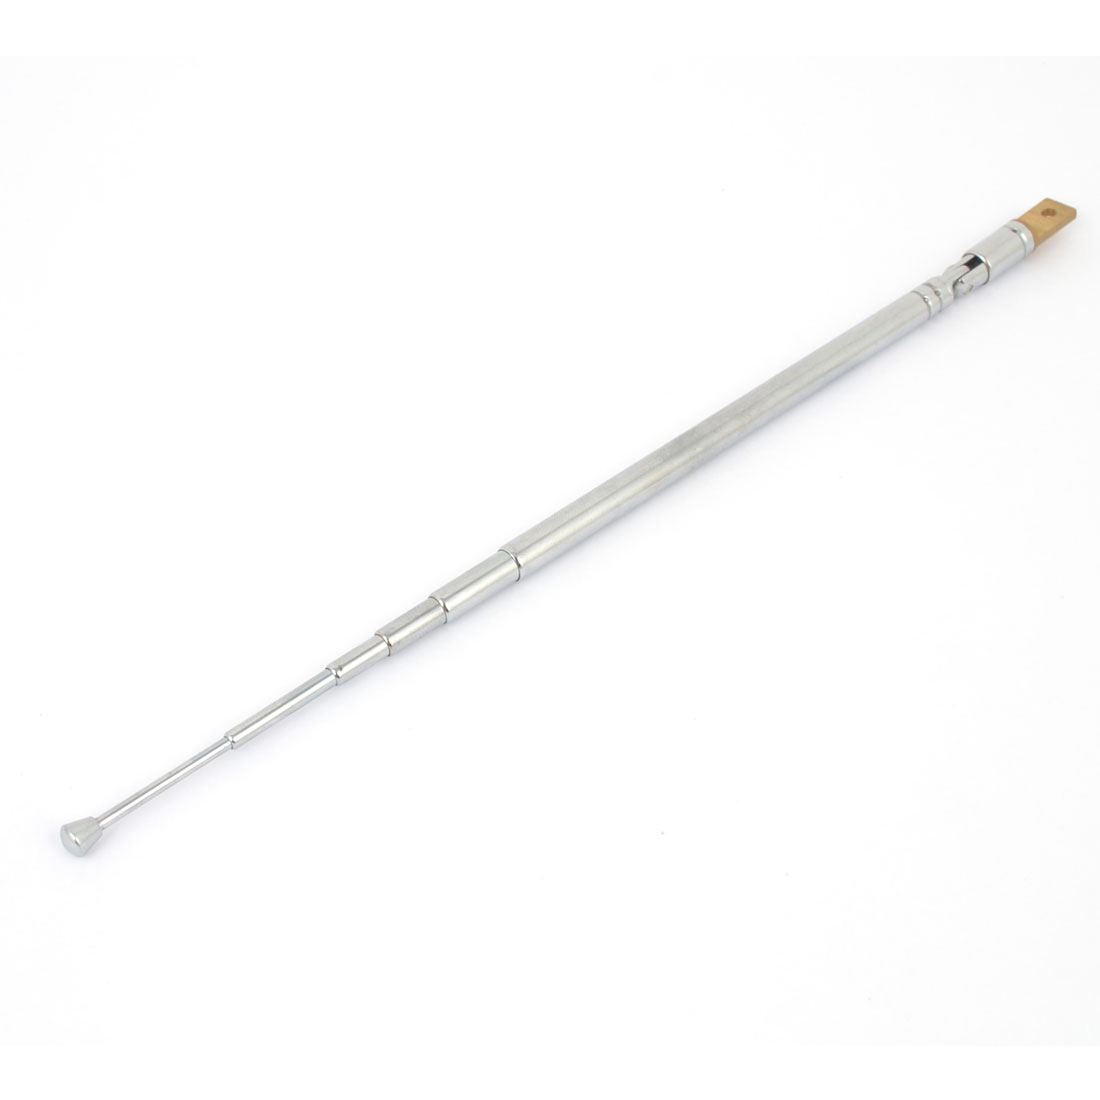 Radio Control AM FM Radio TV Stainless Steel Telescopic Antenna Remote Aerial 53cm Long 6 Sections